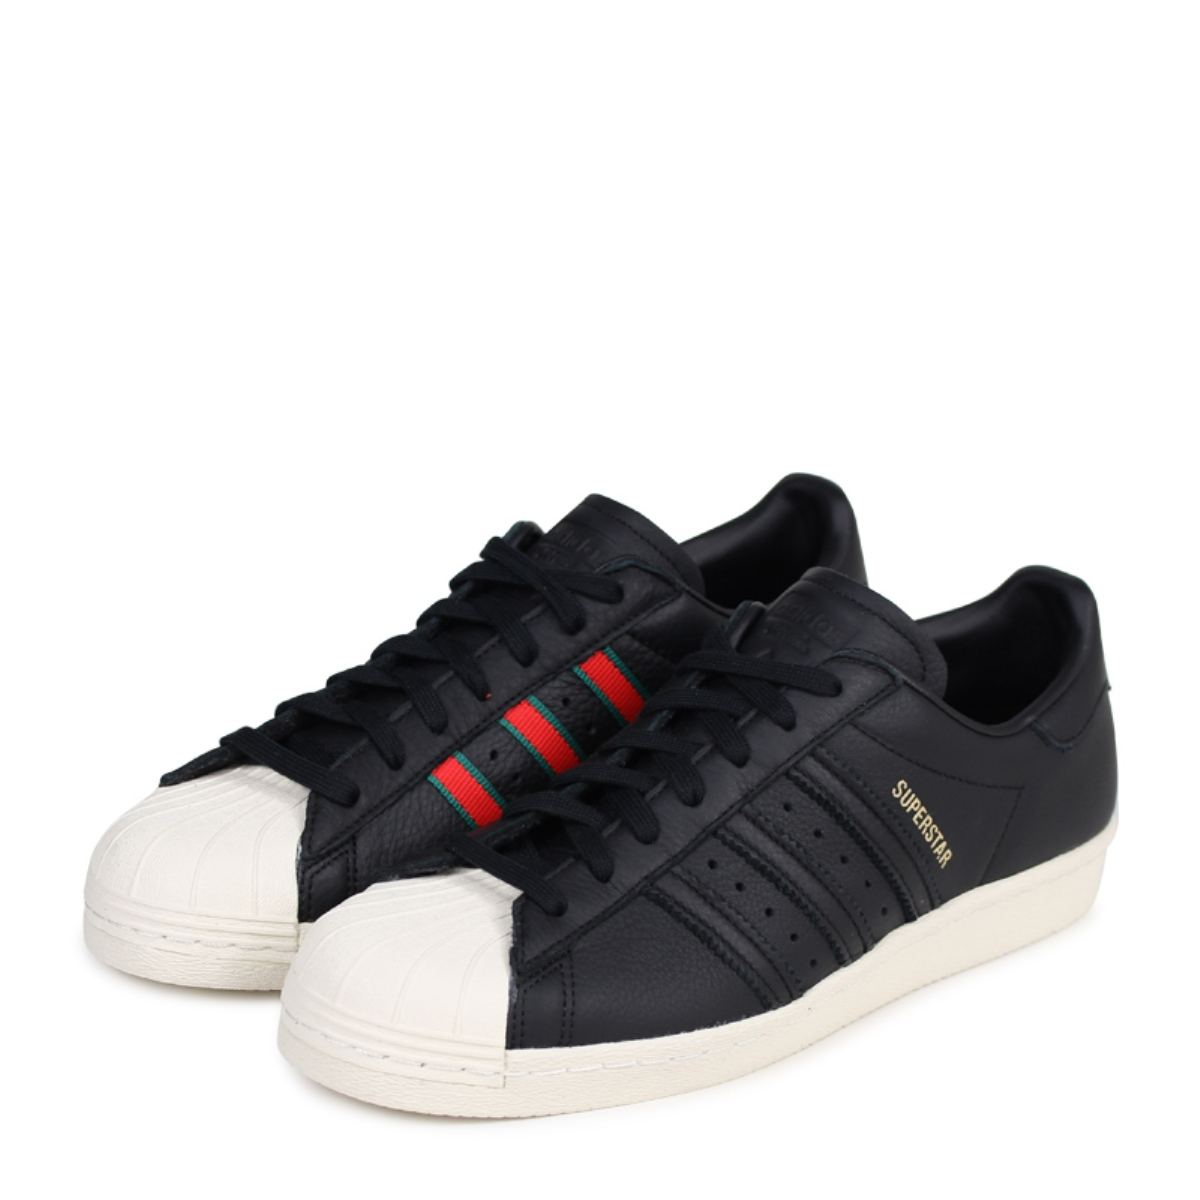 ALLSPORTS: adidas Originals SUPERSTAR Adidas